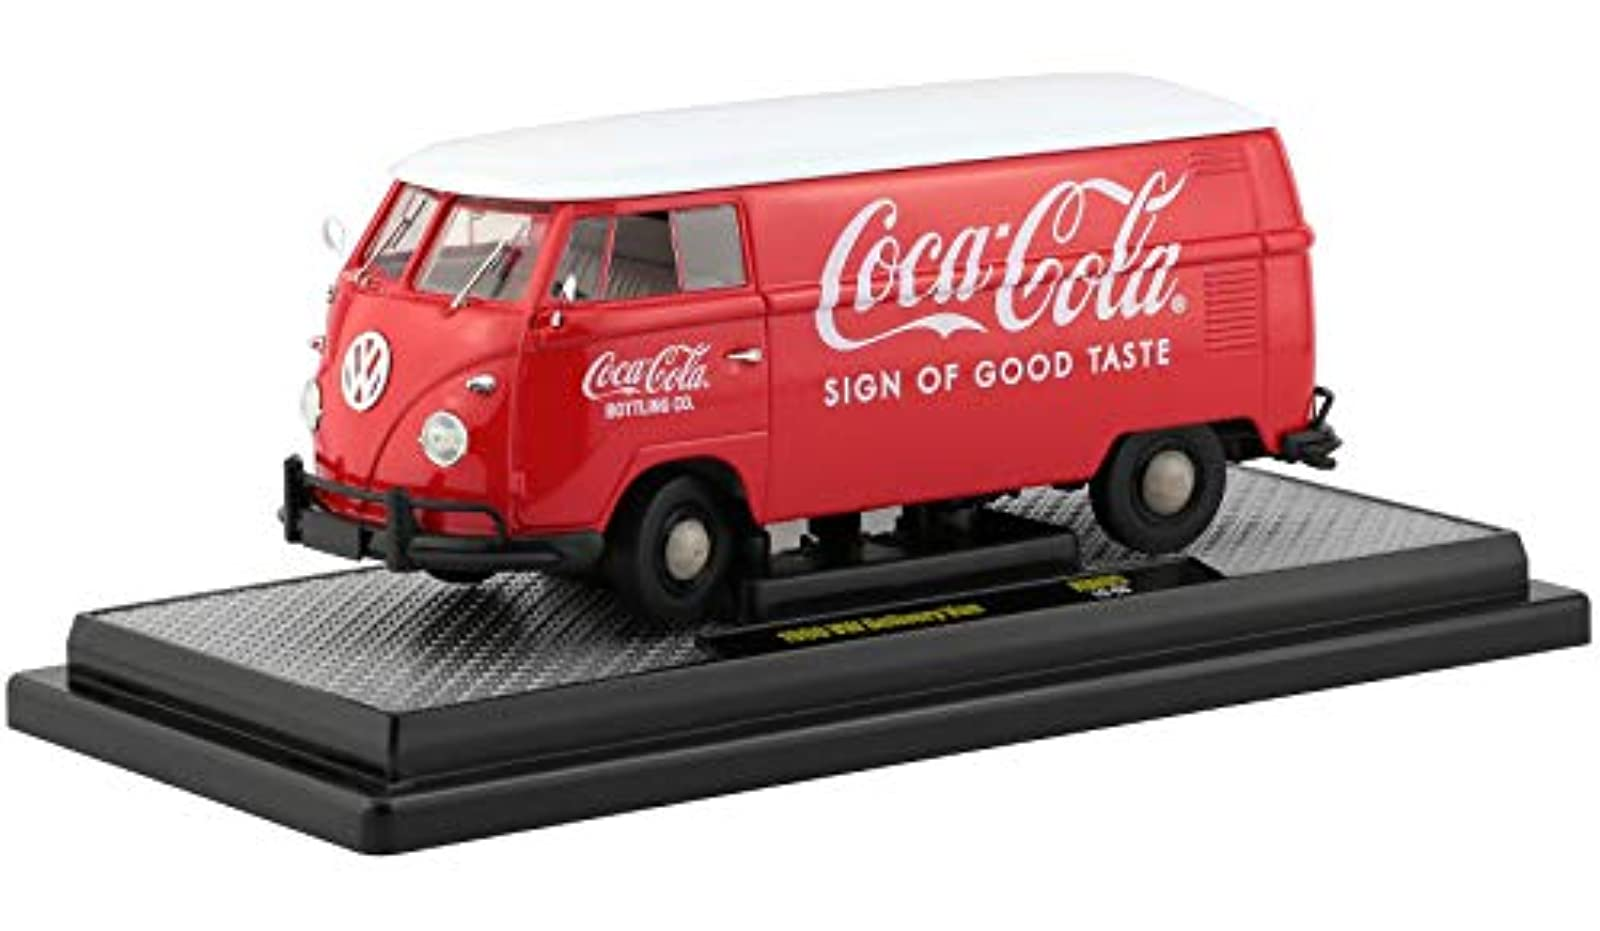 1960 Volkswagen Delivery Van Coca-Cola Red With White Top Limited Edition To 200